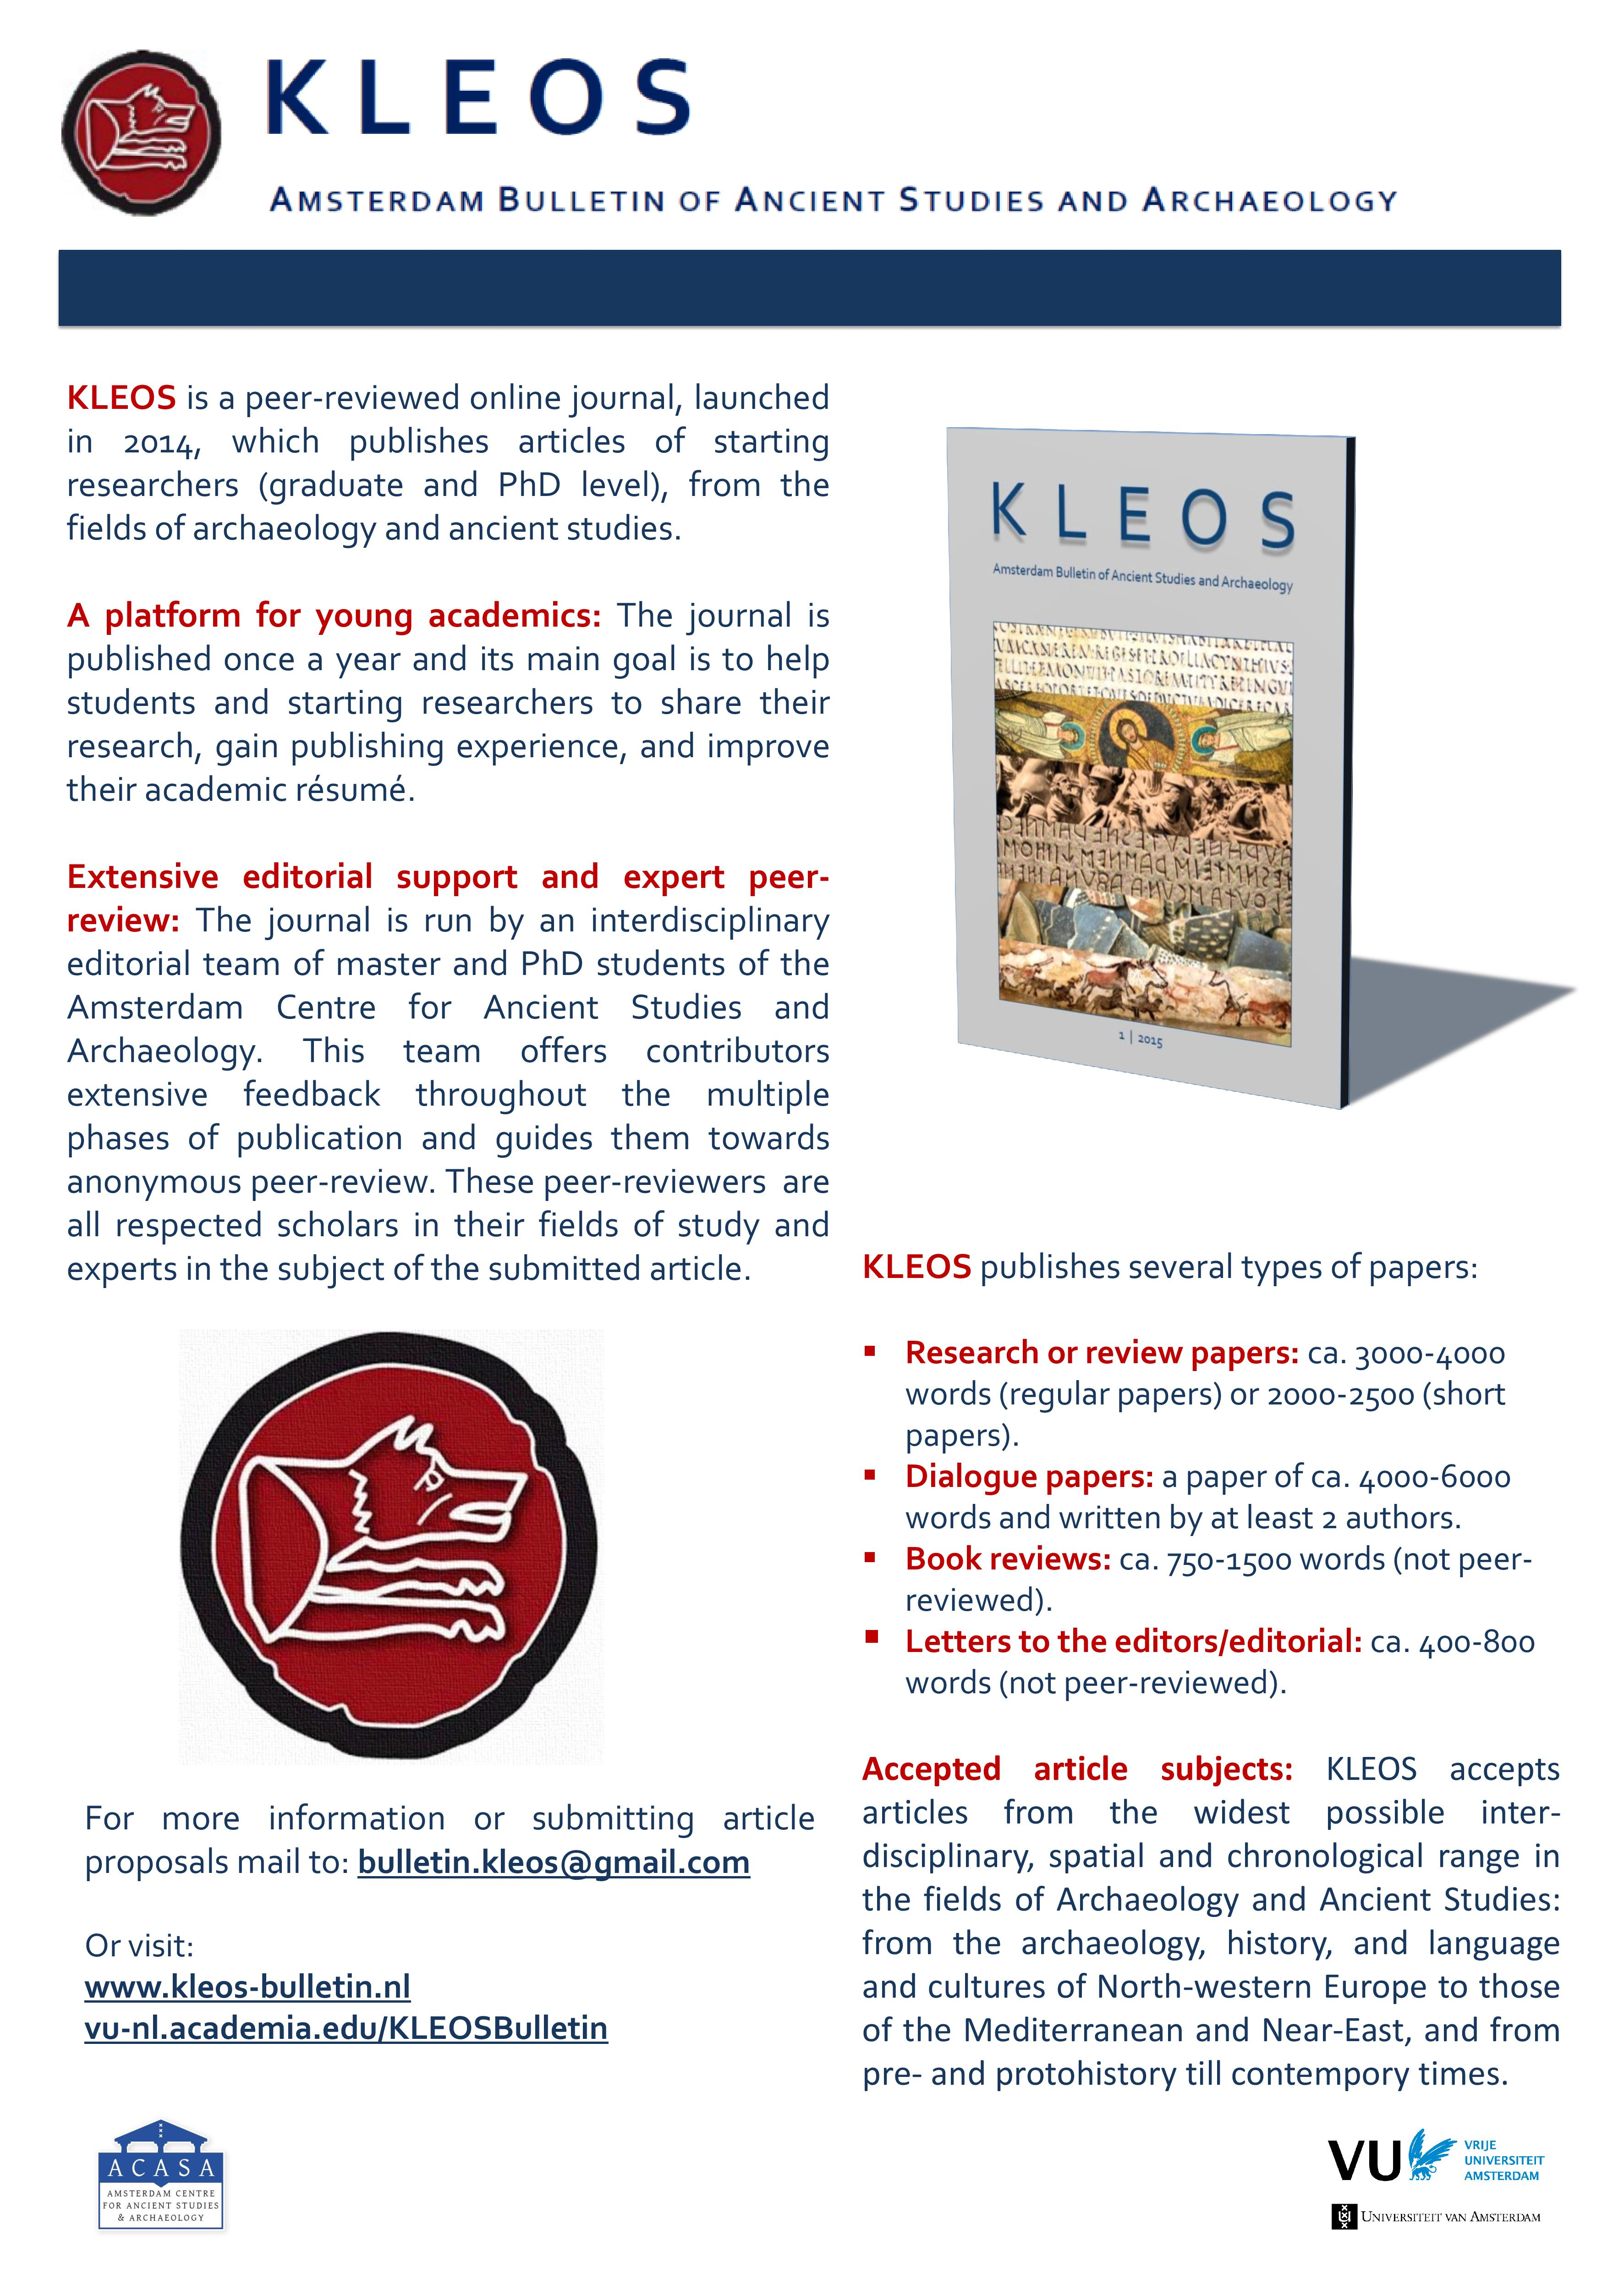 KLEOS flyer for contributors